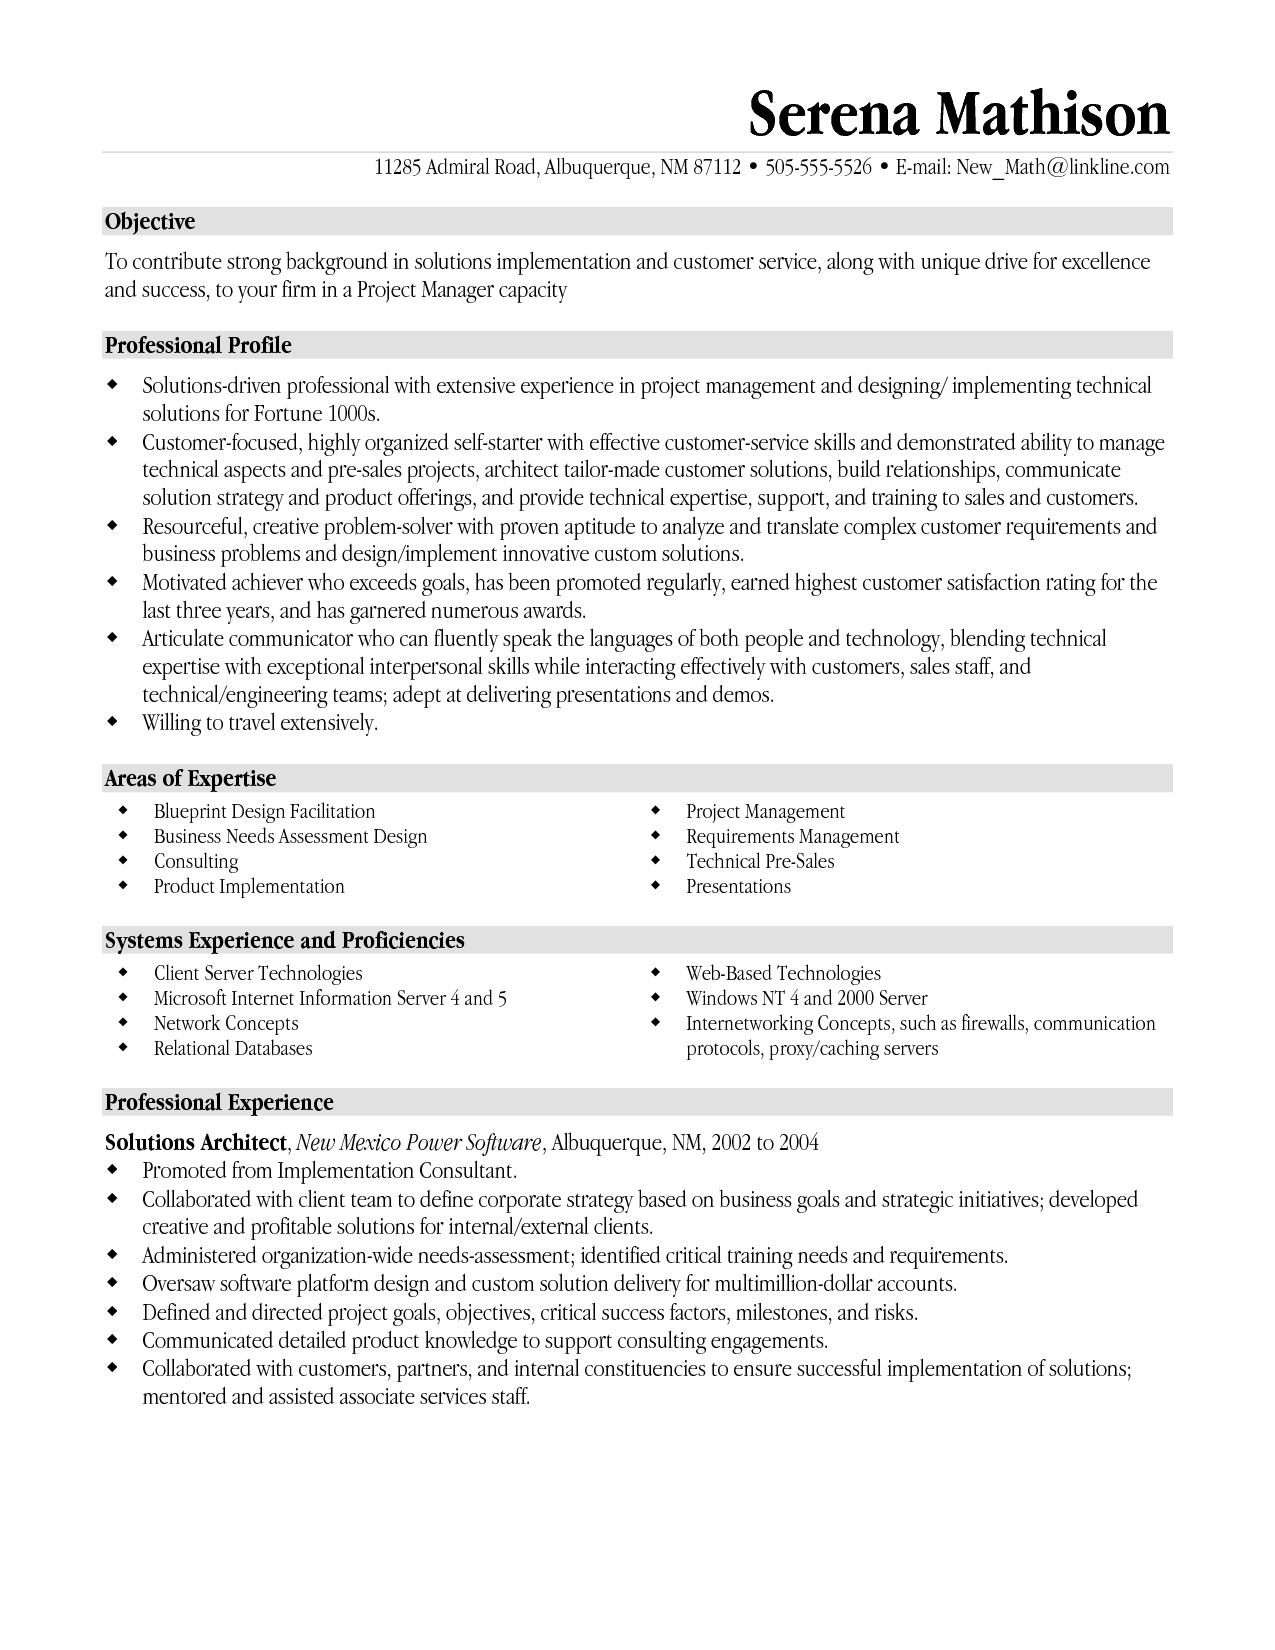 resume templates project manager | project management resume | cv ...